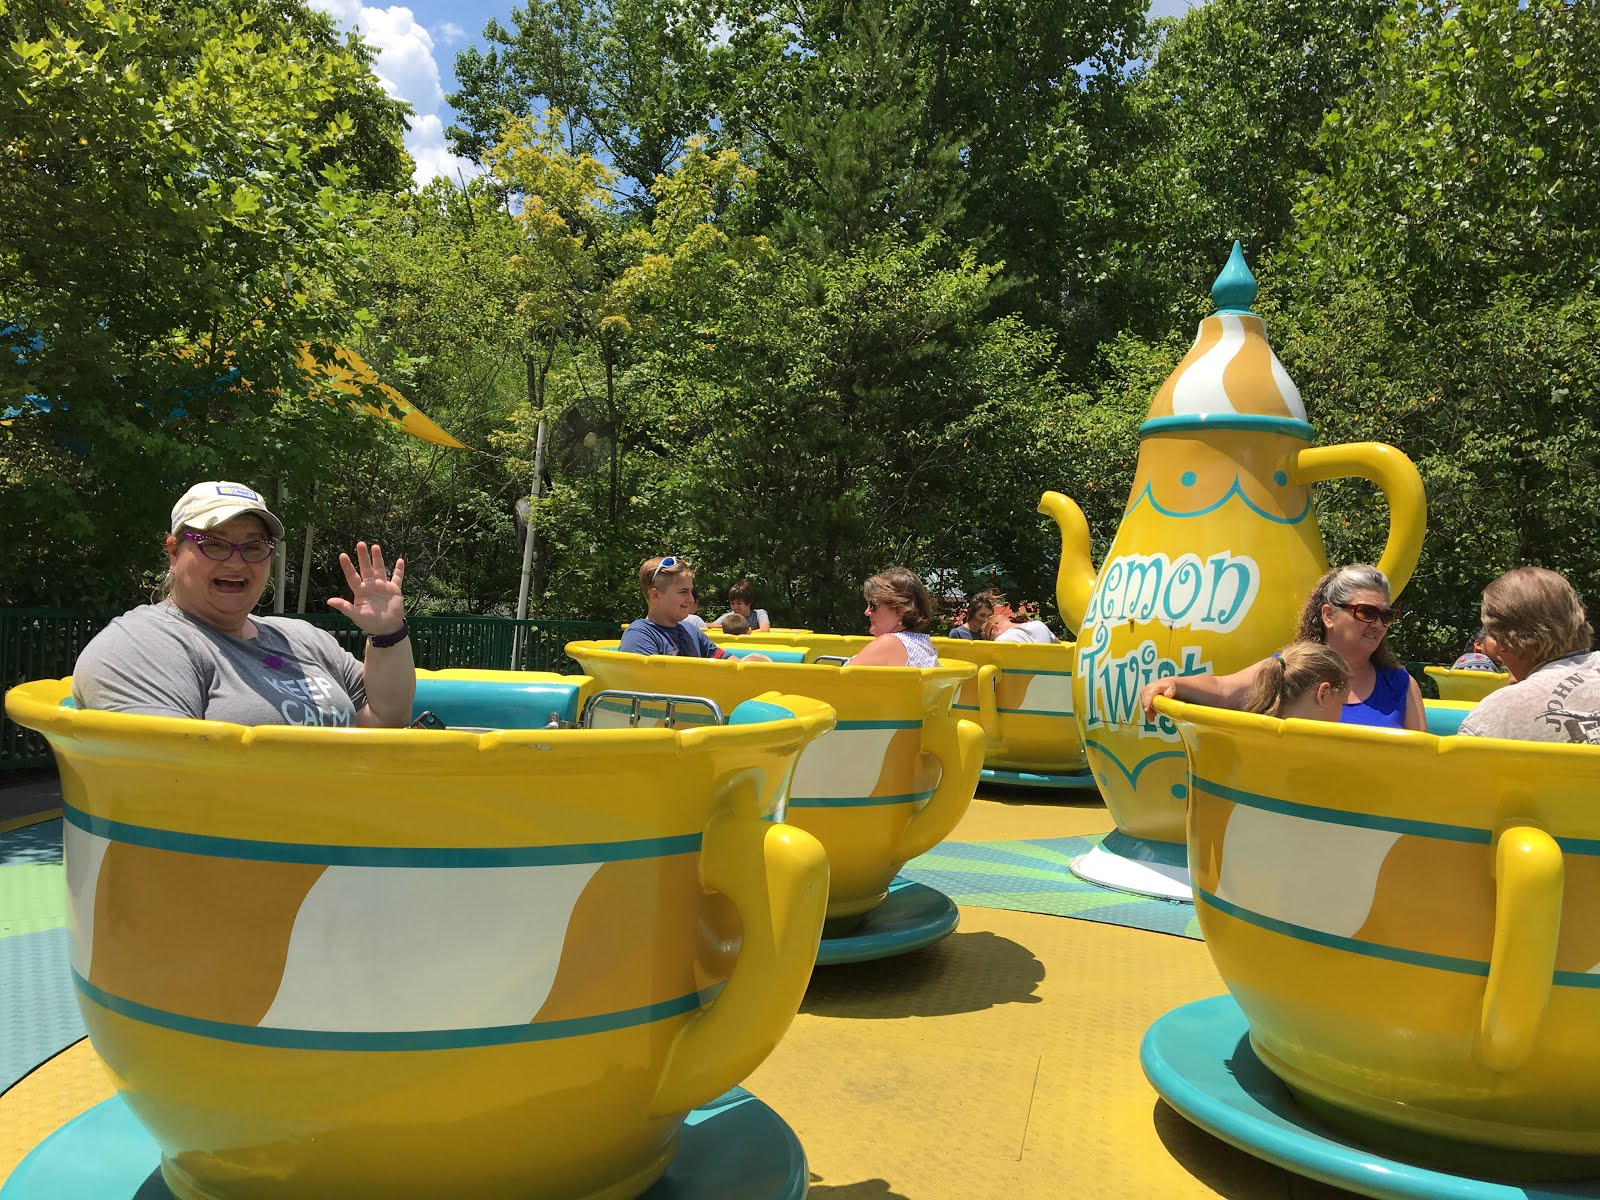 Dollywood Teacup ride, TN 2017